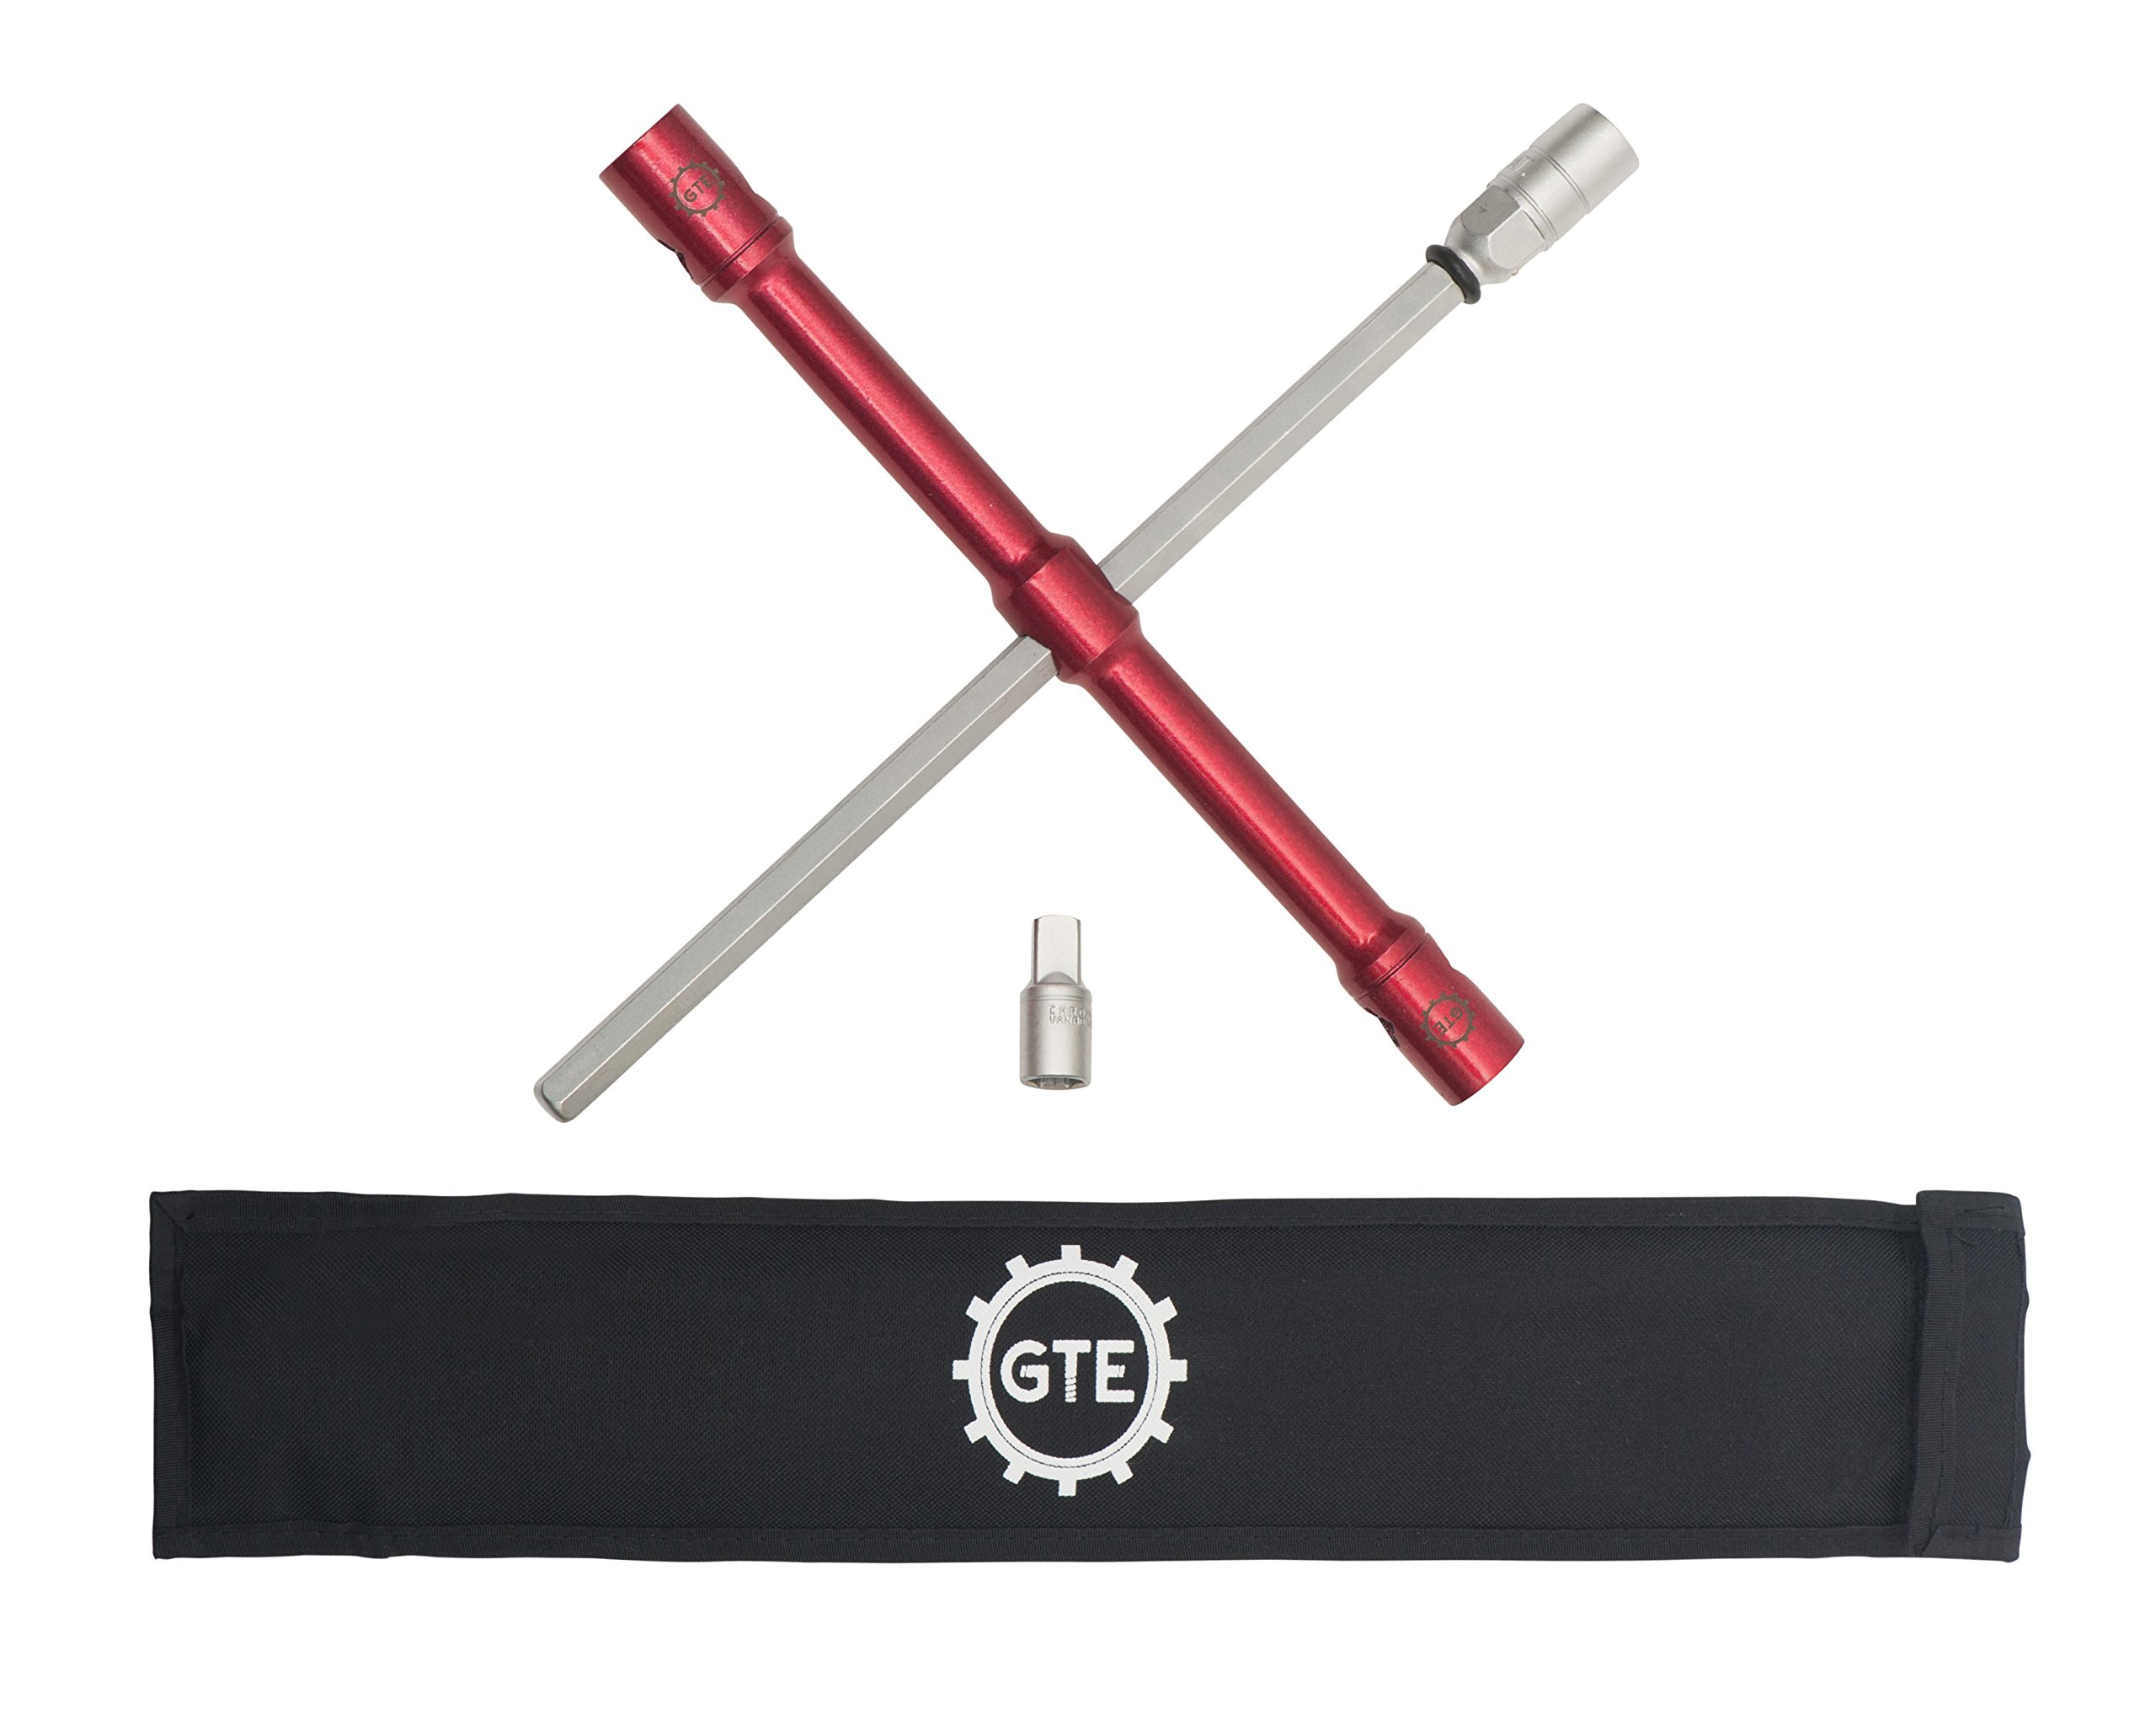 GTE Tools - LugStrong 26'' Universal Compact Lug WrenchSet, Super-Strong Tire Iron & Lug Nut Remover - 2X More Torque! Never Get Stuck on The Road Again!